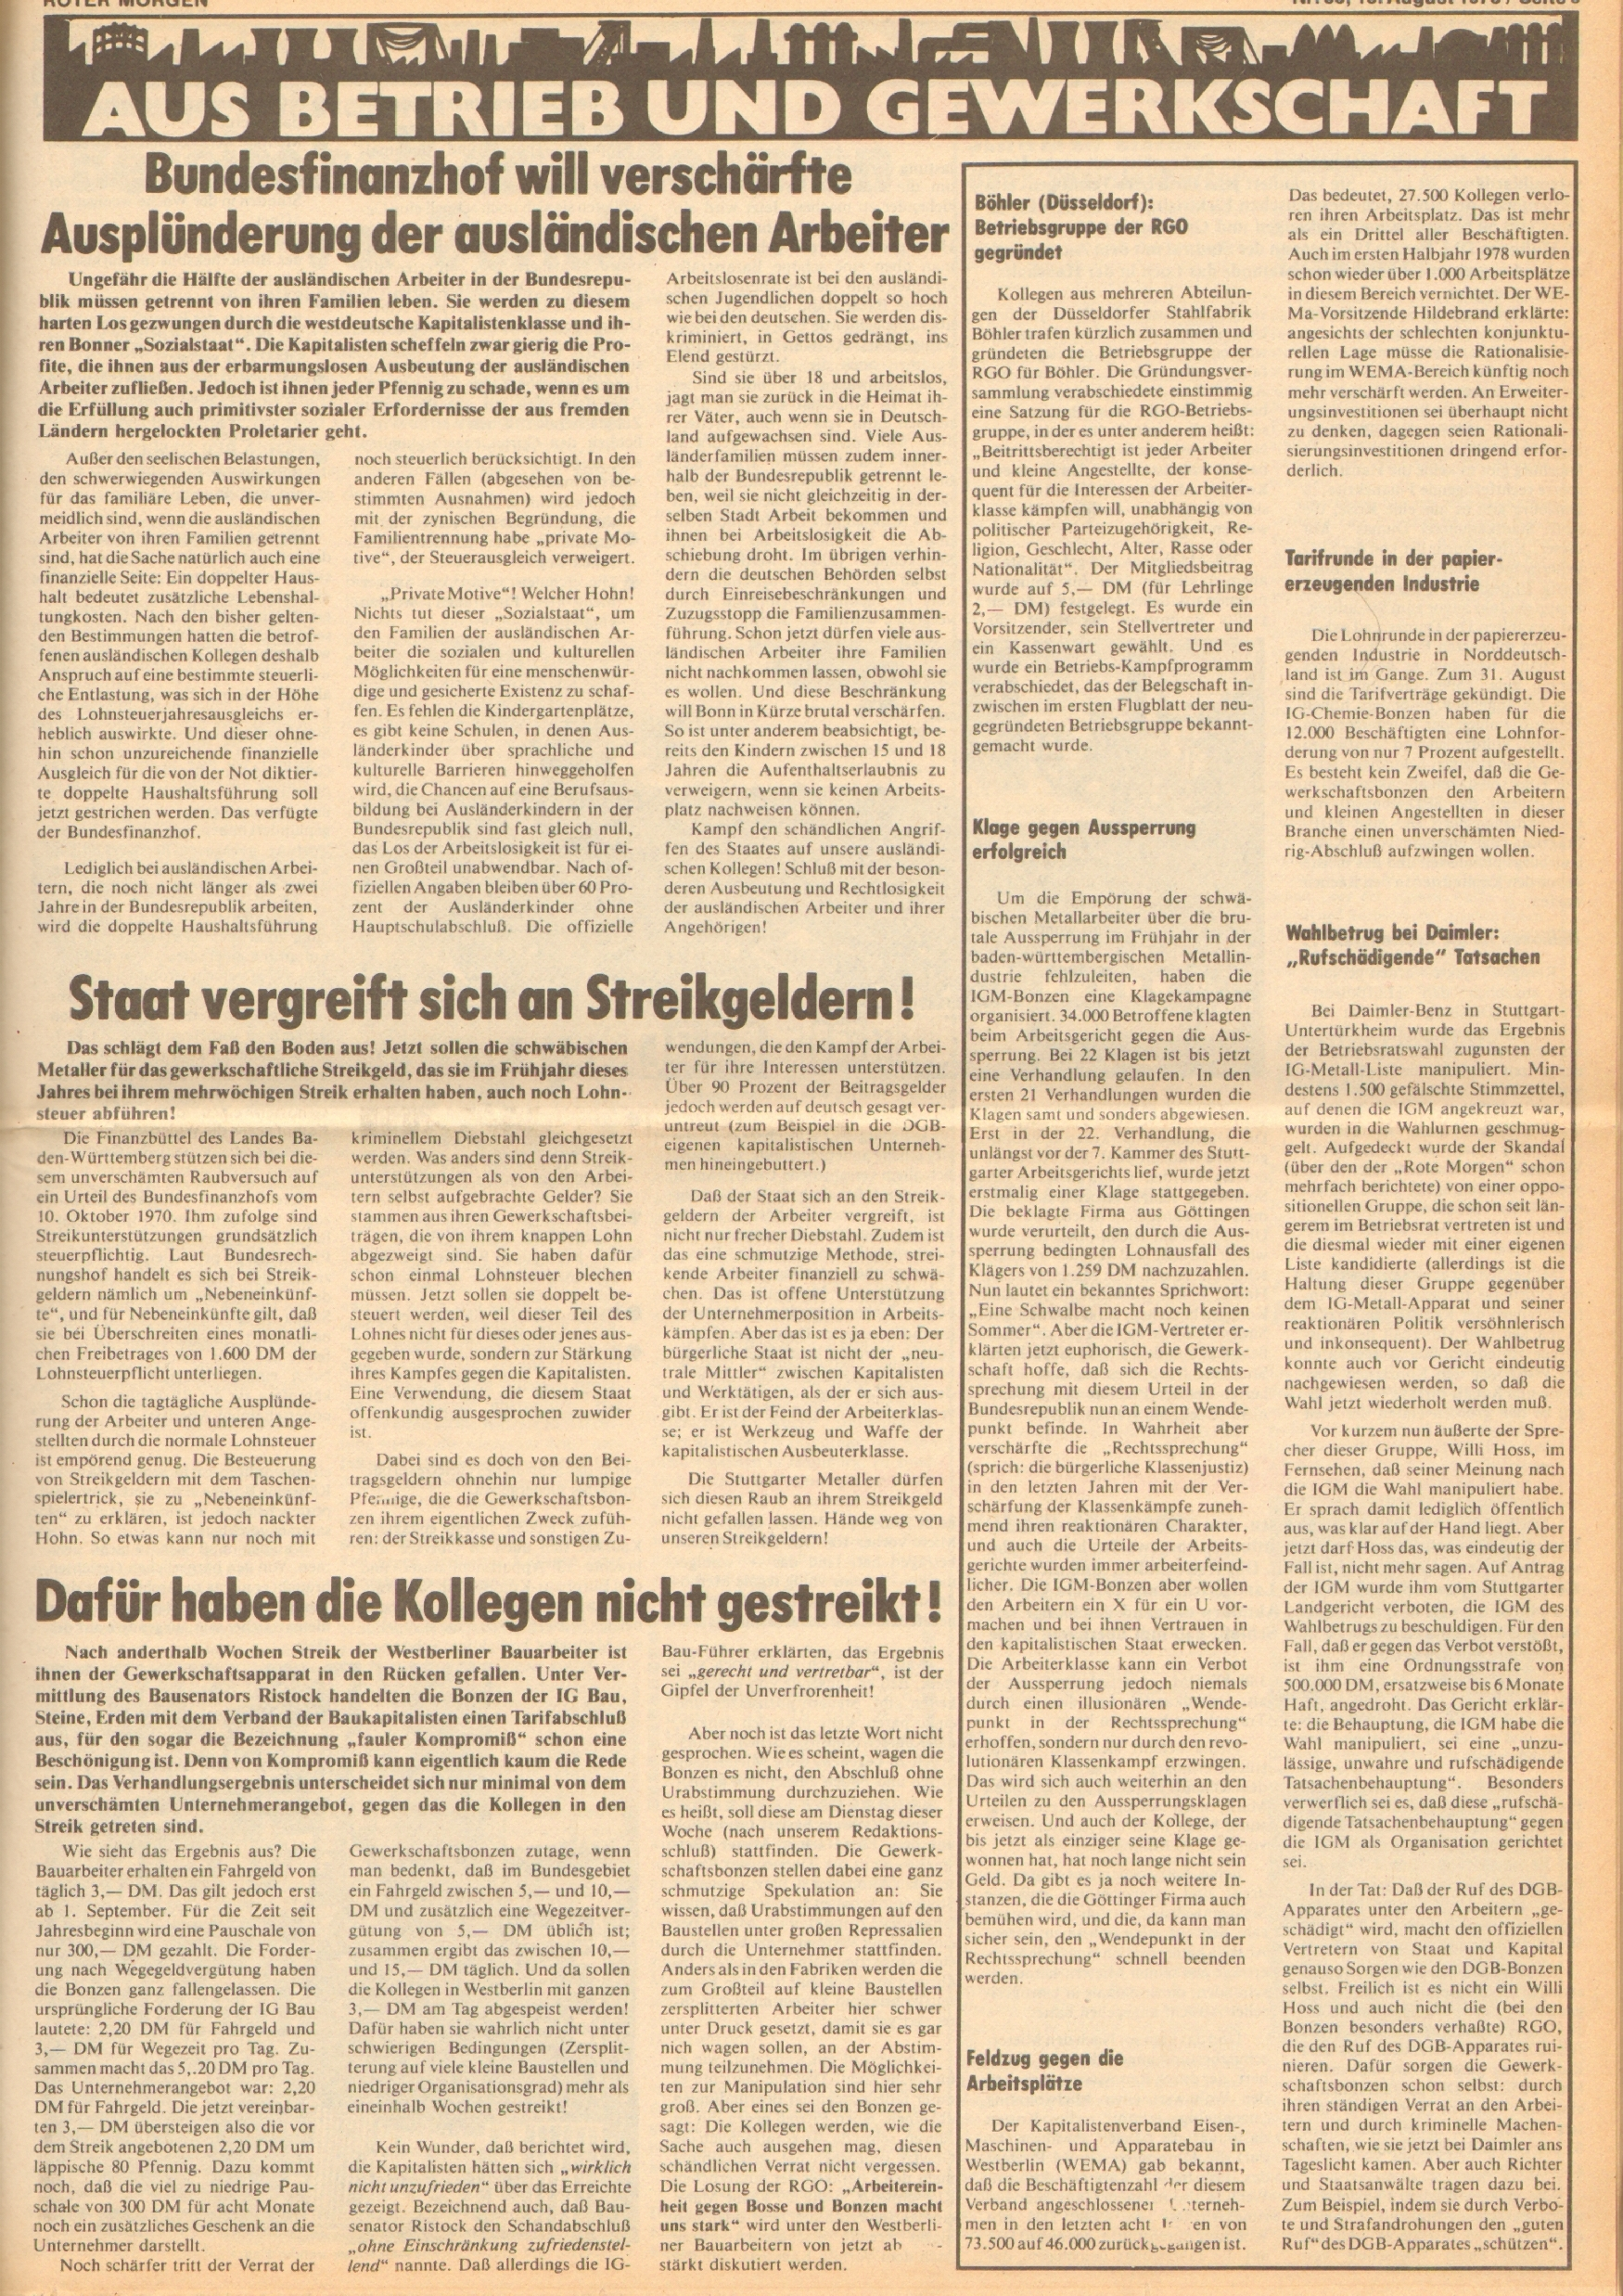 Roter Morgen, 12. Jg., 18. August 1978, Nr. 33, Seite 5